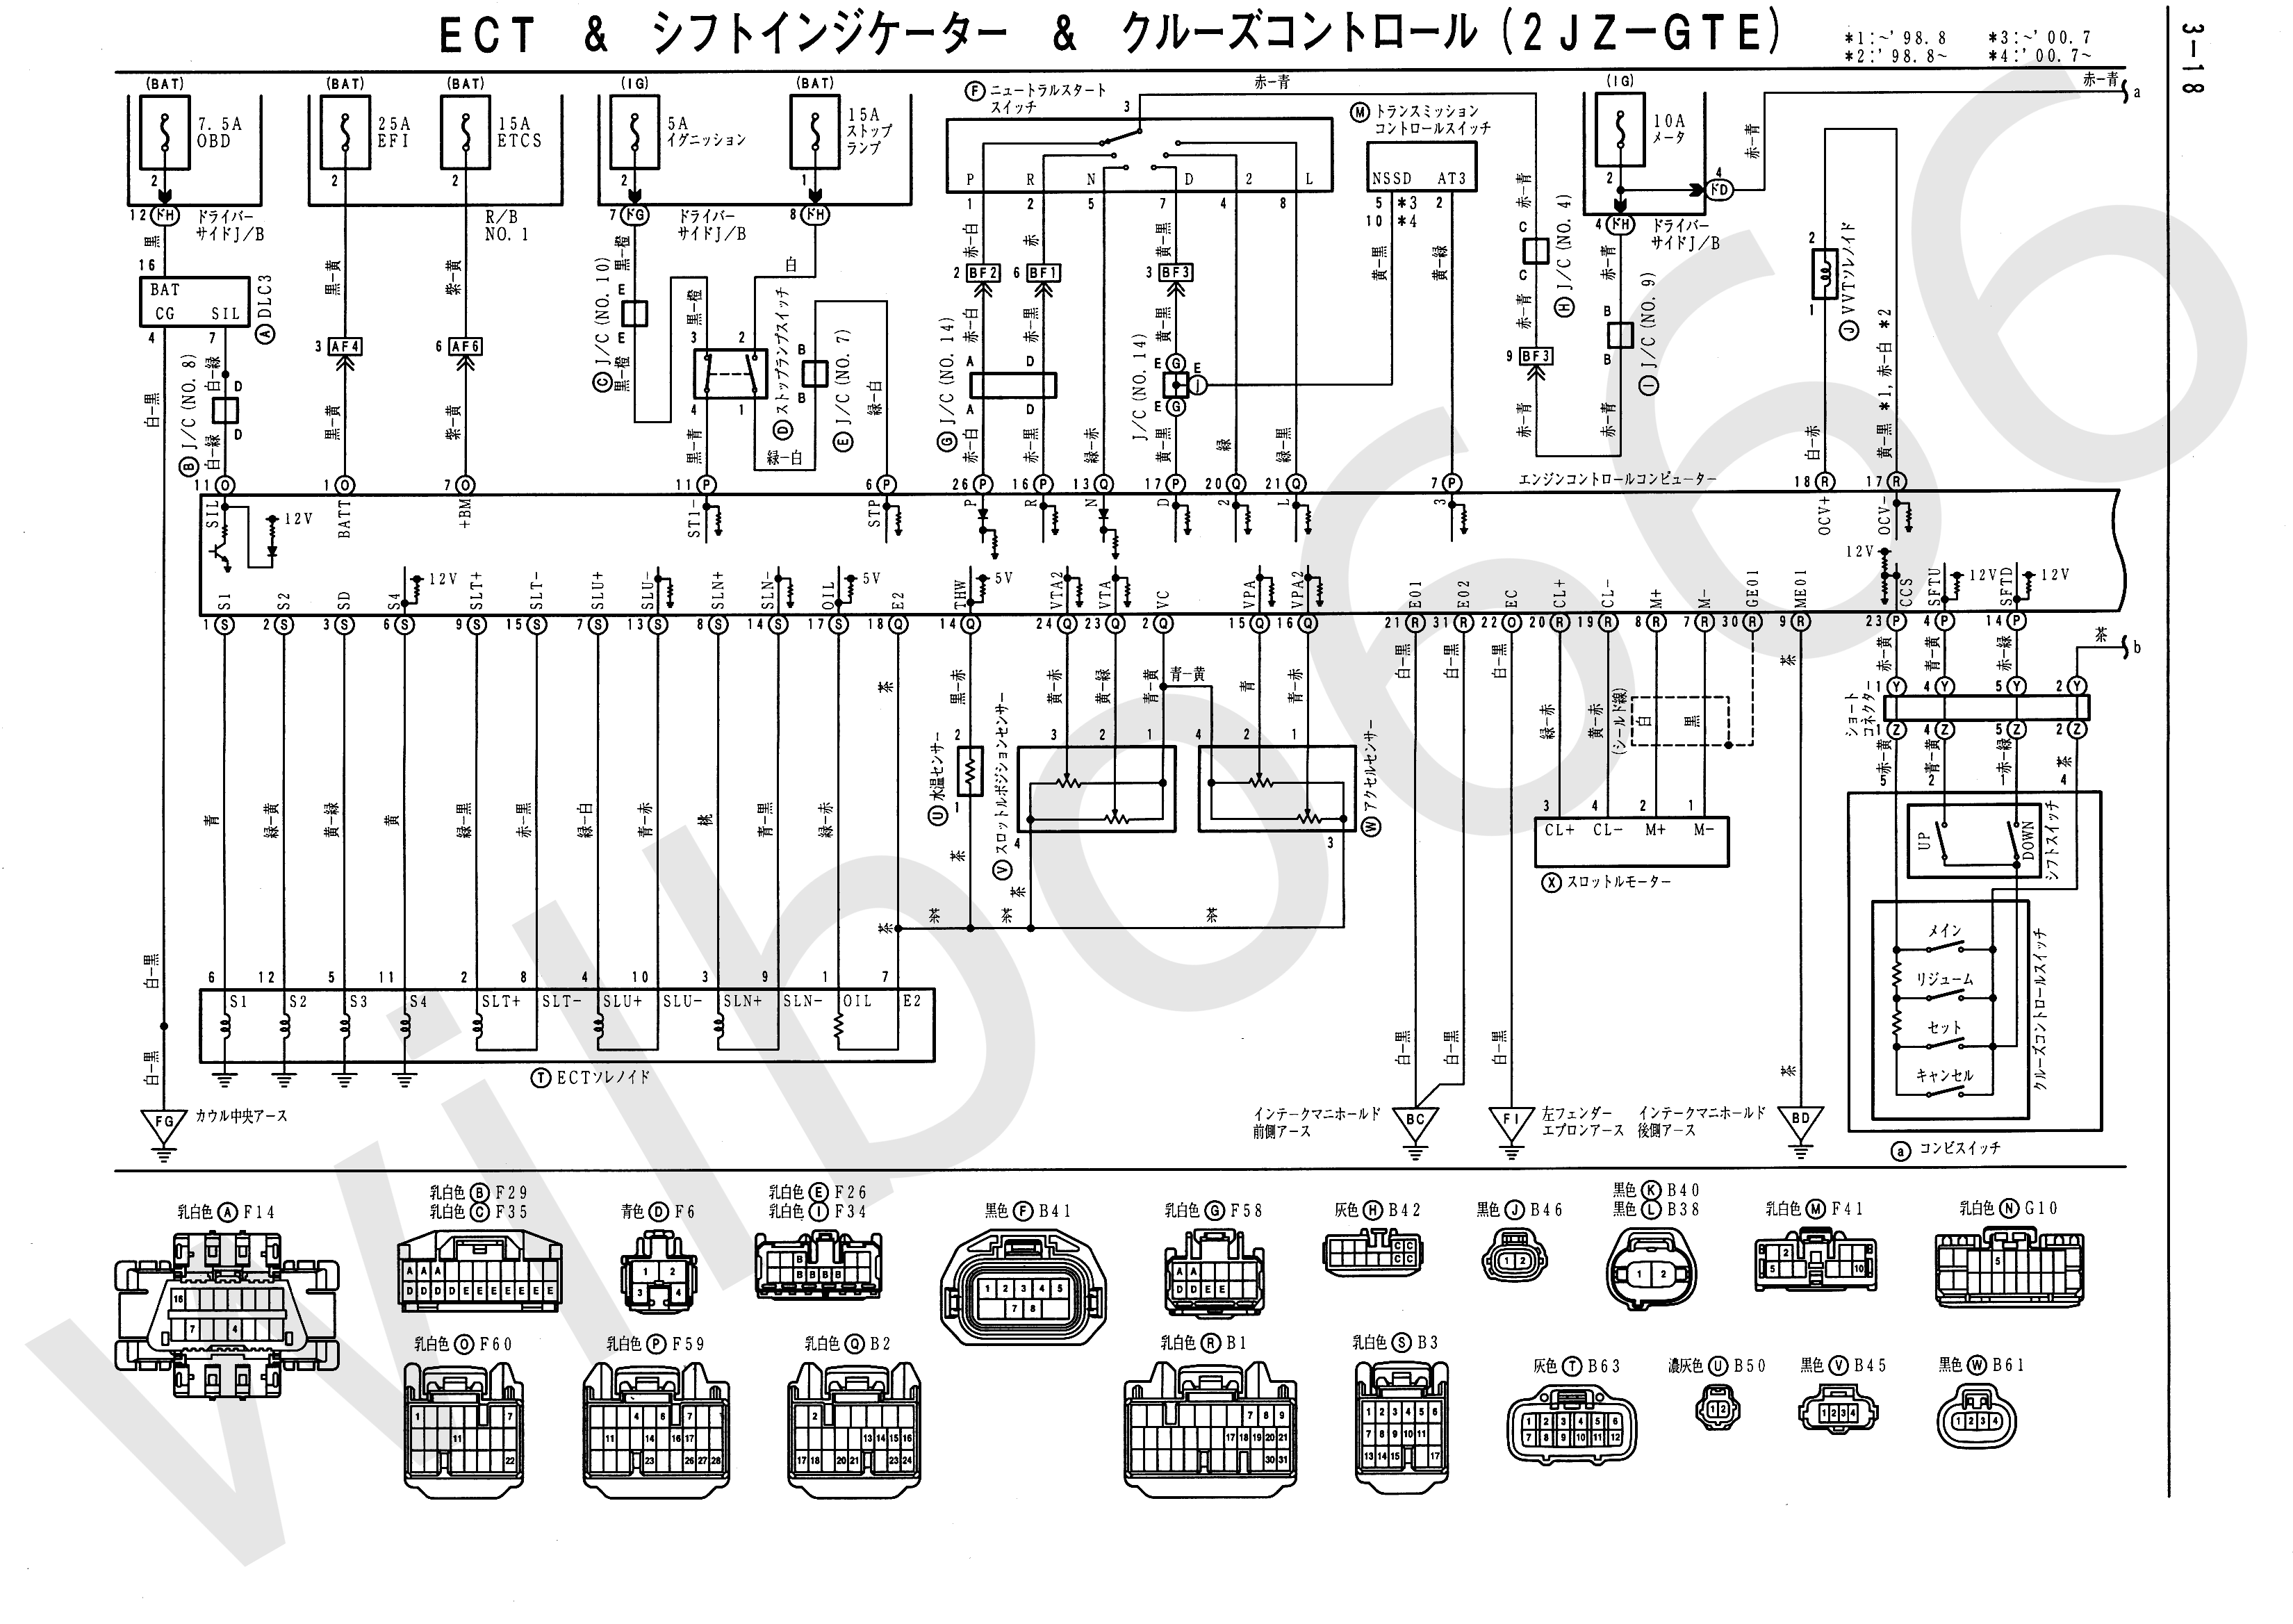 2jz ge ecu wiring diagram 2jz discover your wiring diagram supra ecu wiring diagram